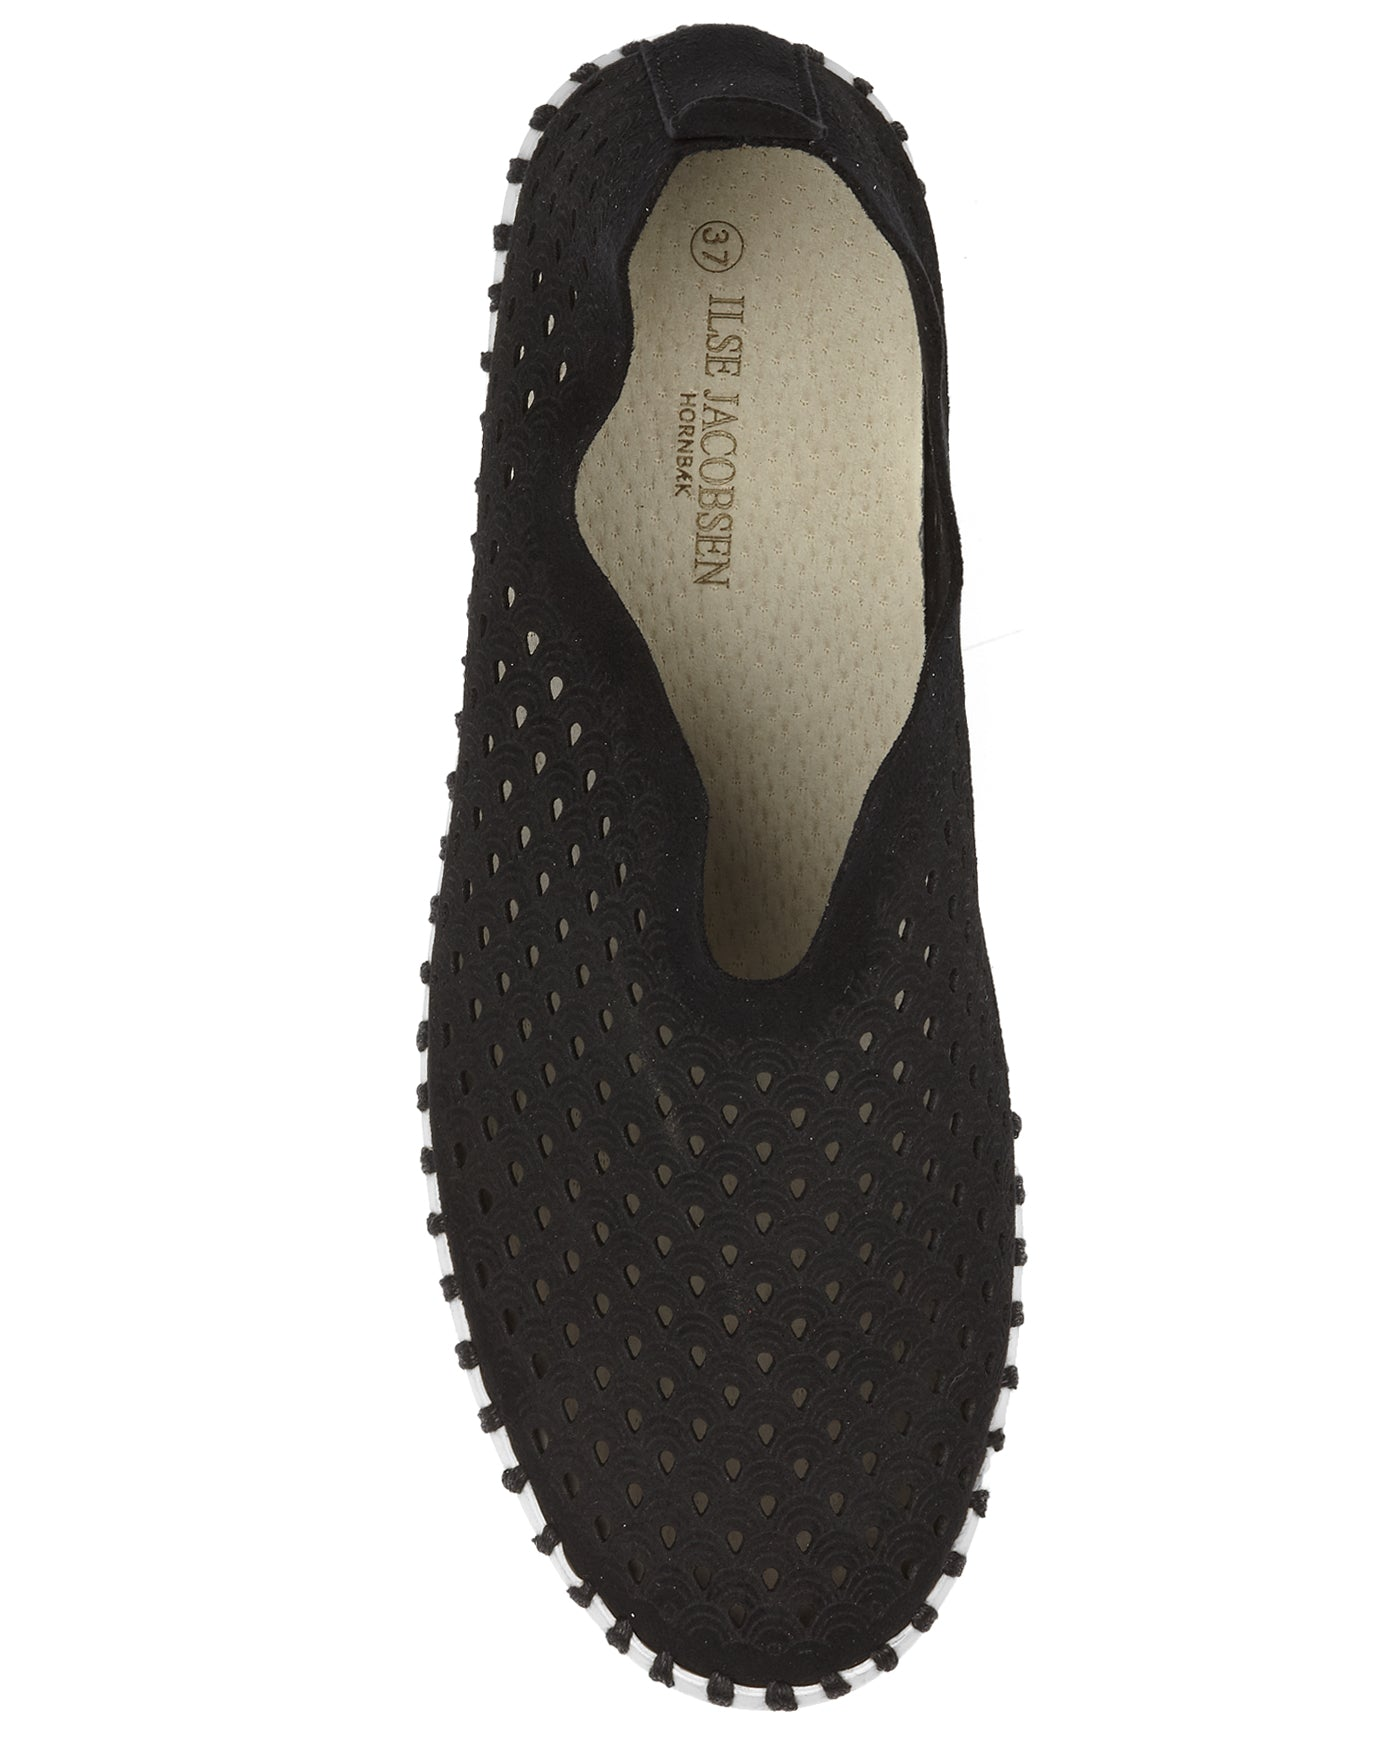 Tulip 3275 Black - The Espadrille Hut